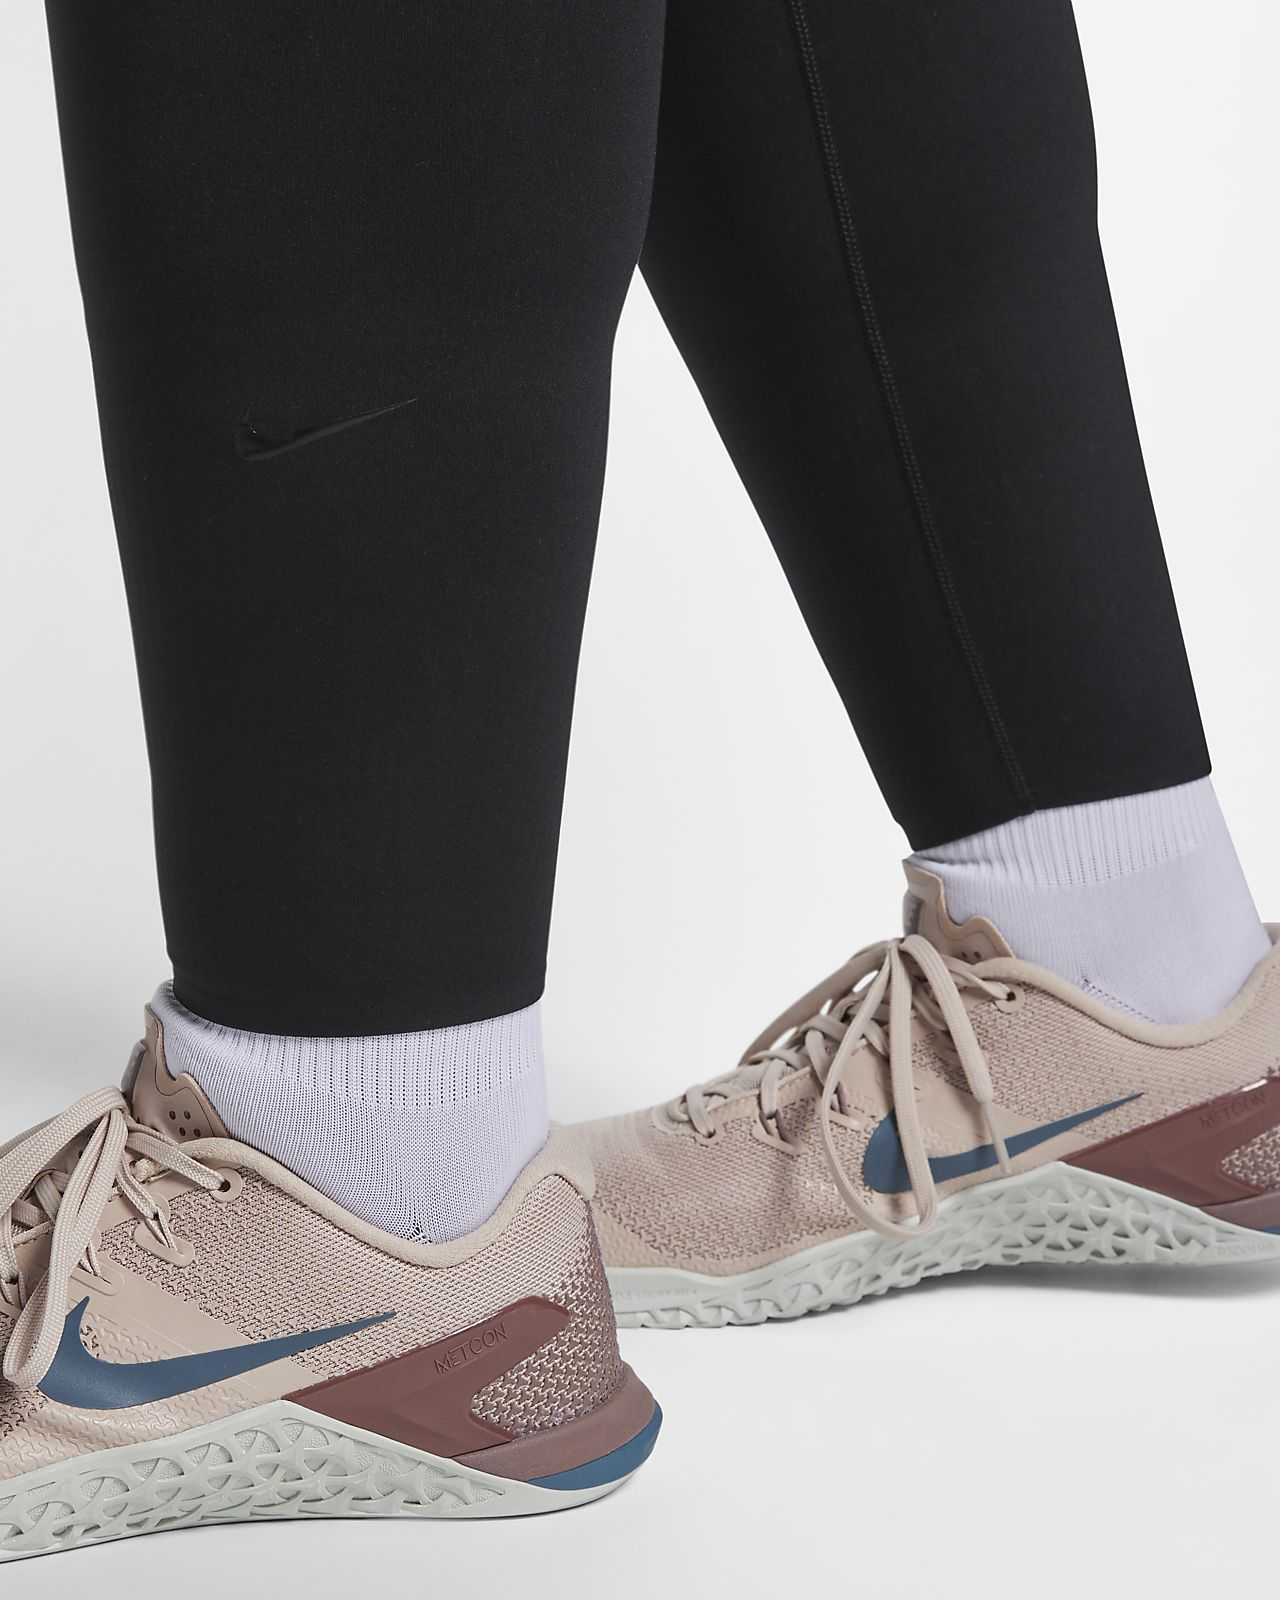 release date a8634 21ff4 ... Tight Nike One Luxe pour Femme (grande taille)